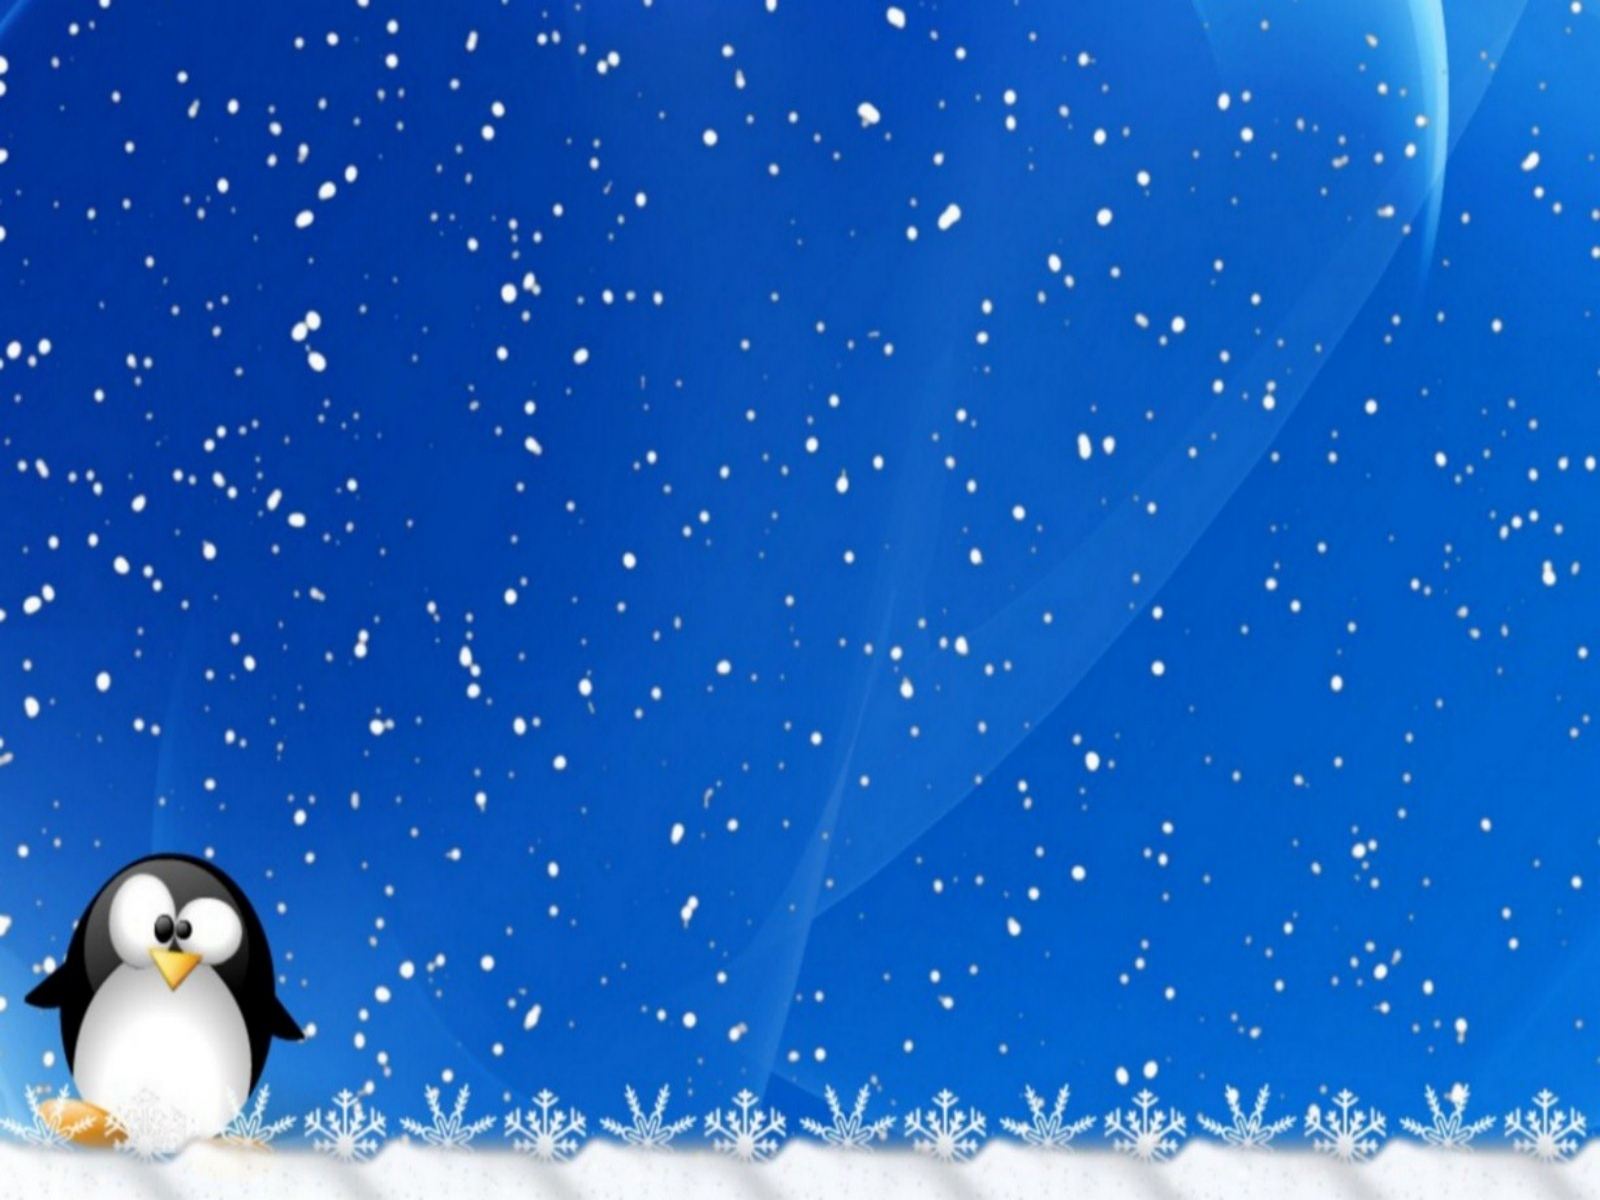 Winter Holiday Background   PowerPoint Backgrounds for 1600x1200